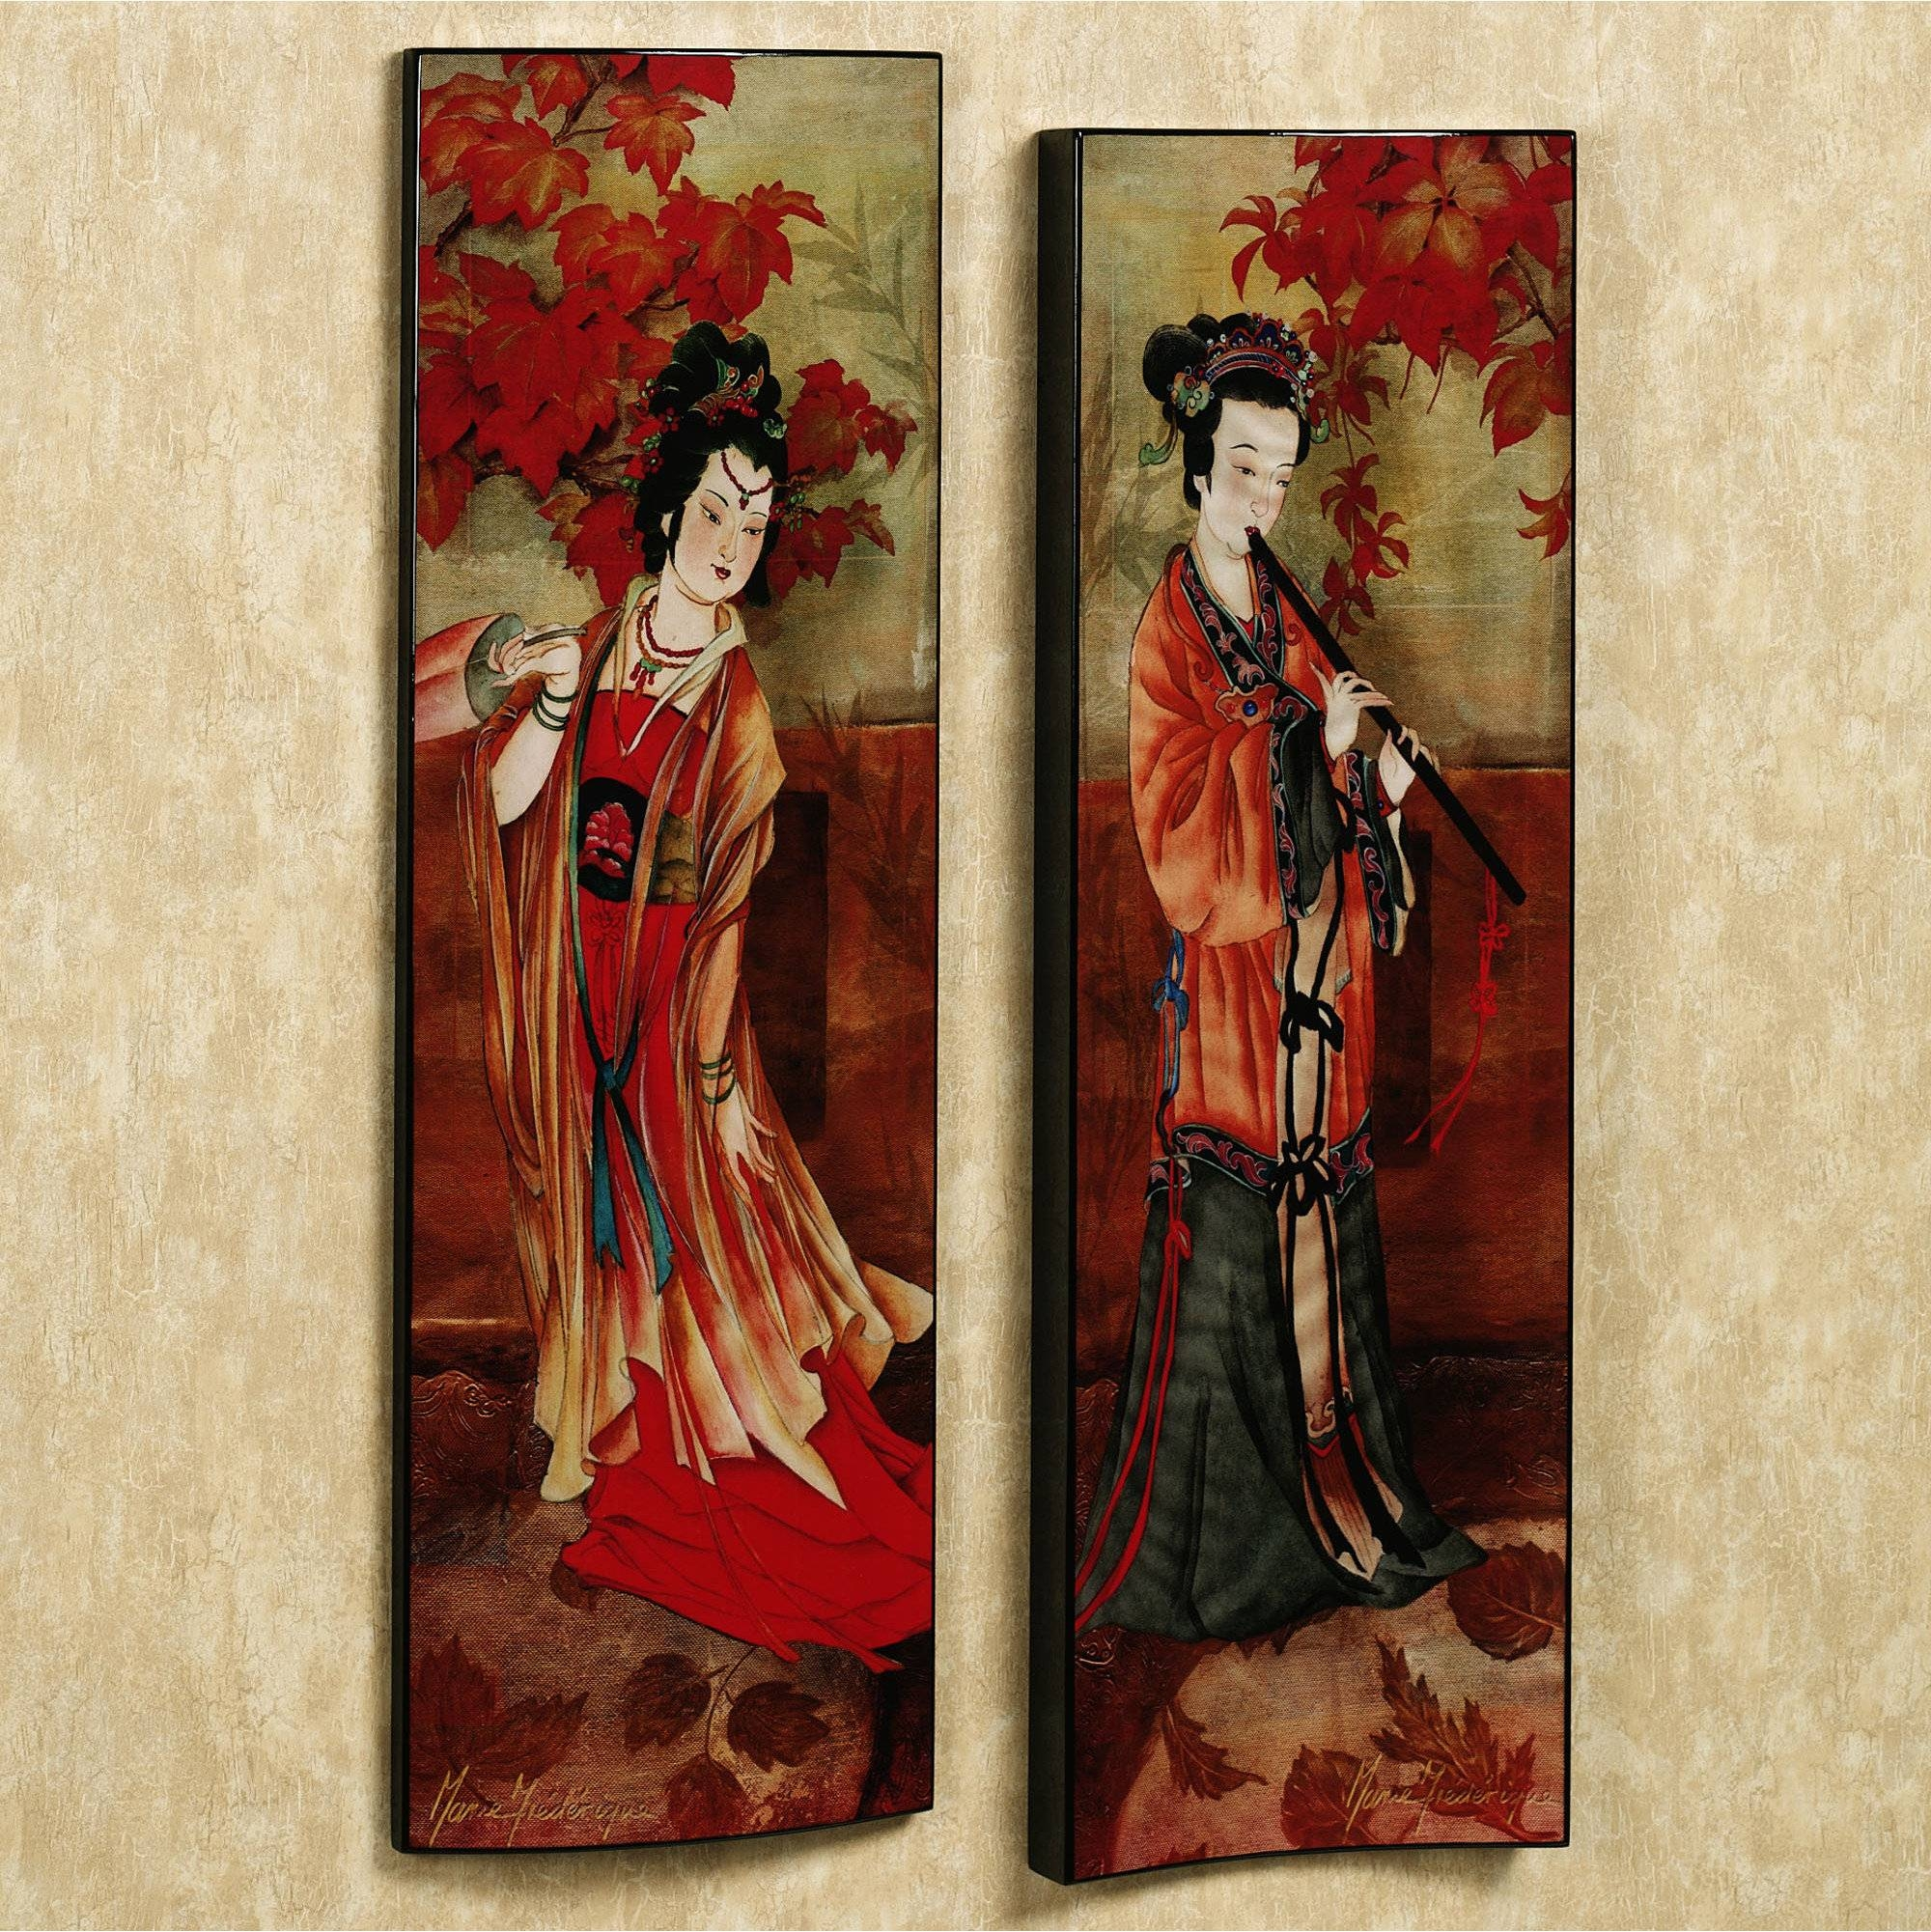 Wall Art Decor: Orange Portrait Geisha Wall Art Position Wooden Throughout Newest Japanese Wall Art Panels (View 22 of 25)